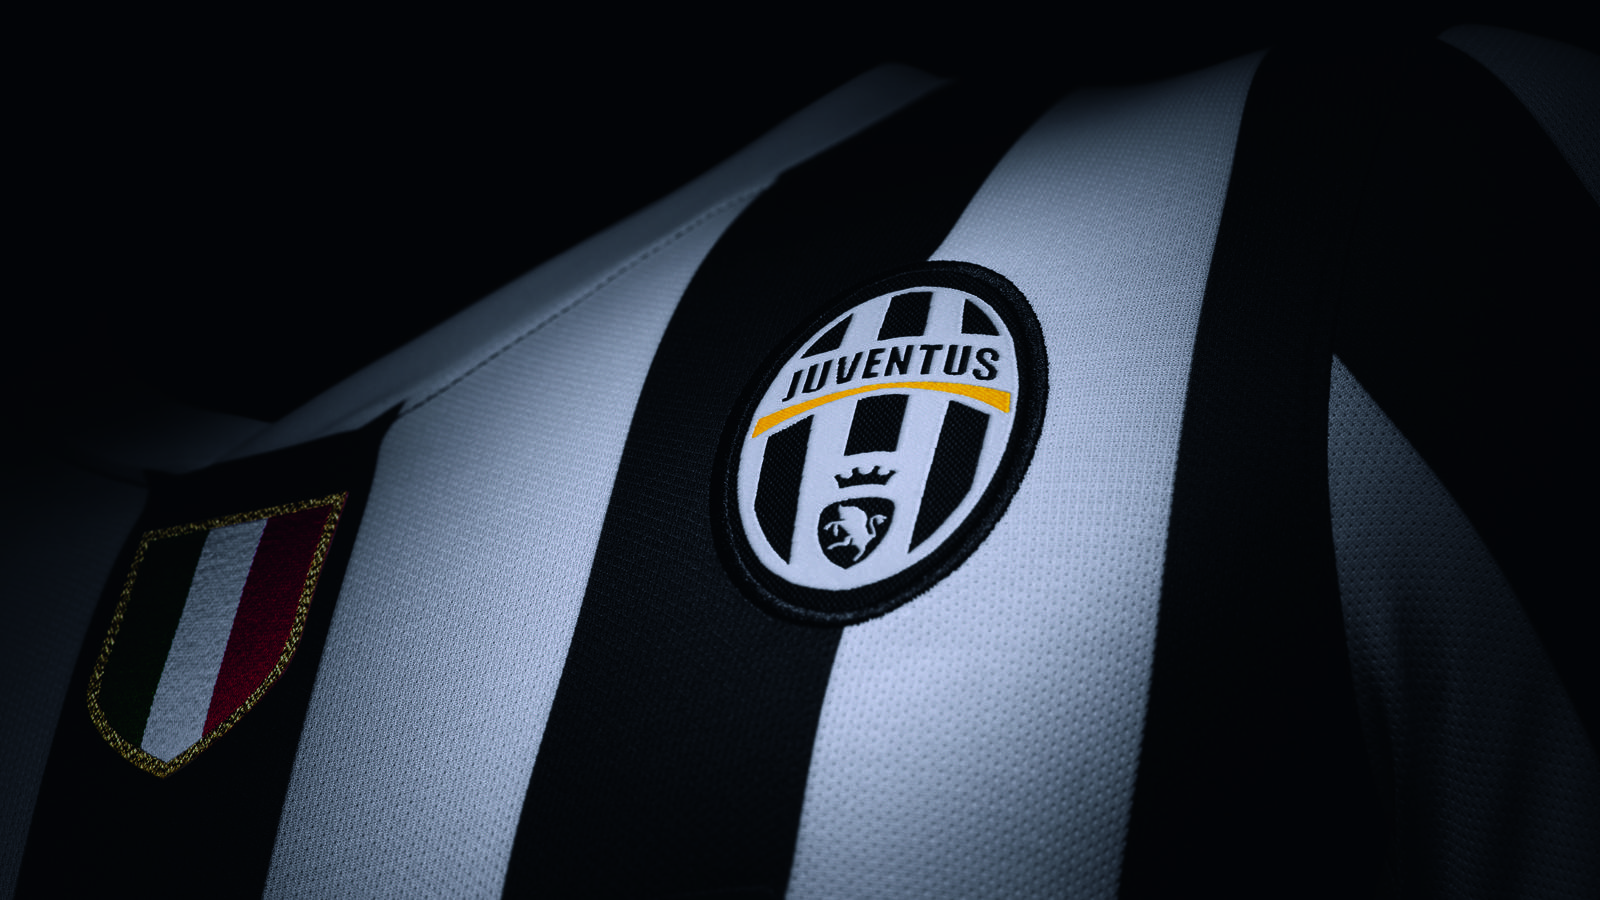 Top Wallpaper Nike Aesthetic - Fa13_Match_Juventus_H_Crest_C_hd_1600  Pictures_601827.jpg?1368111914